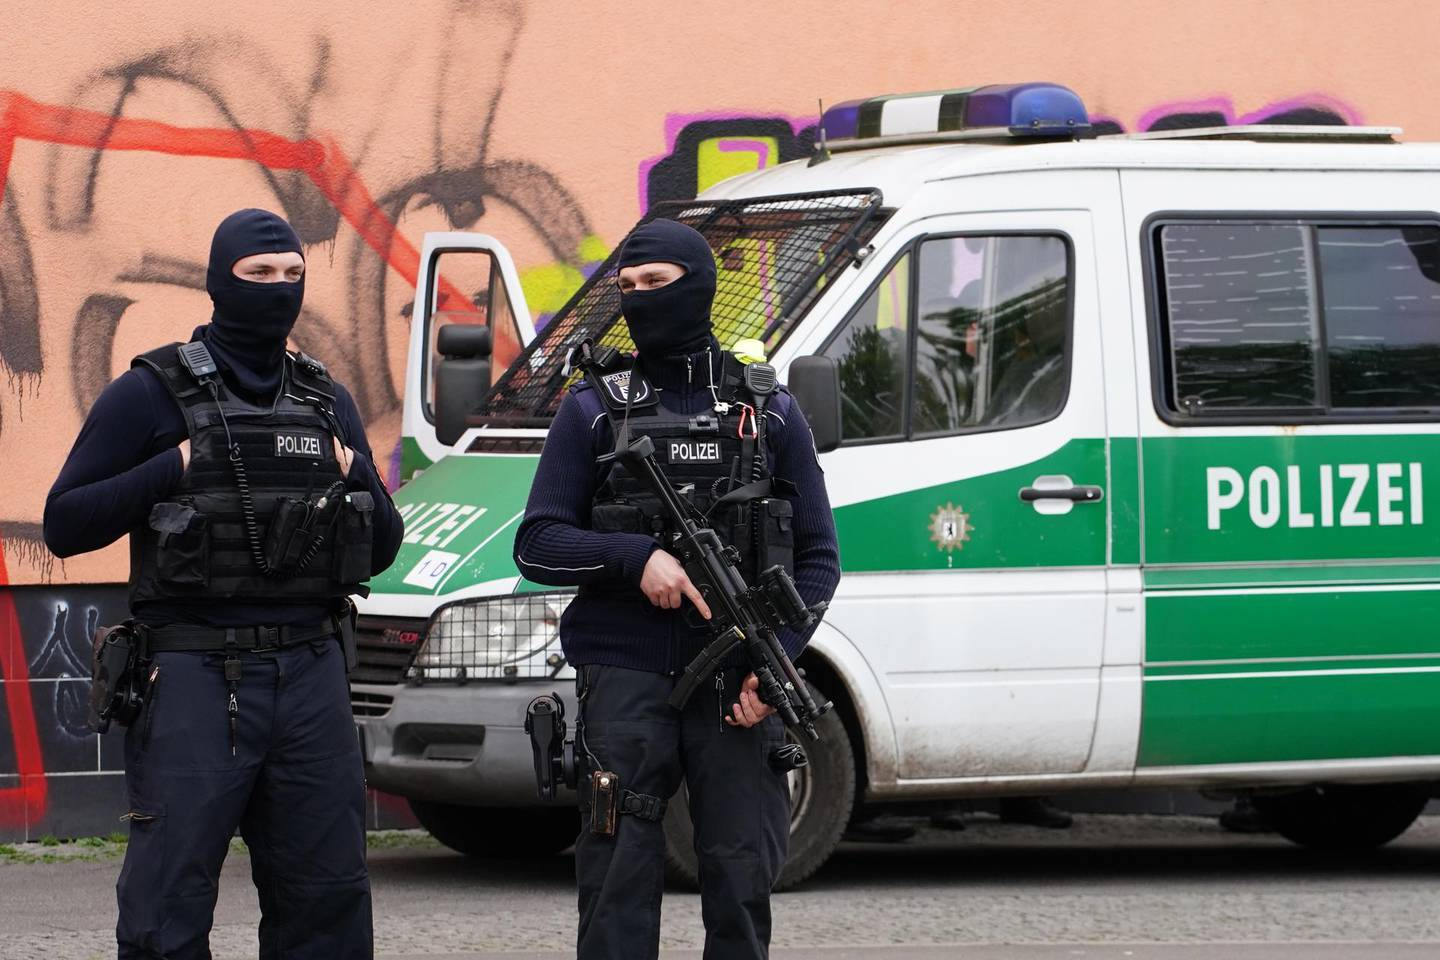 epa08393101 Policemen guard the scene in front of the islamic Al Irschad association in Berlin, Germany, 30 April 2020. German Minister of Interior, Construction and Homeland Horst Seehofer banned the Hezbollah in Germany. Police raided several locations German wide.  EPA/CLEMENS BILAN